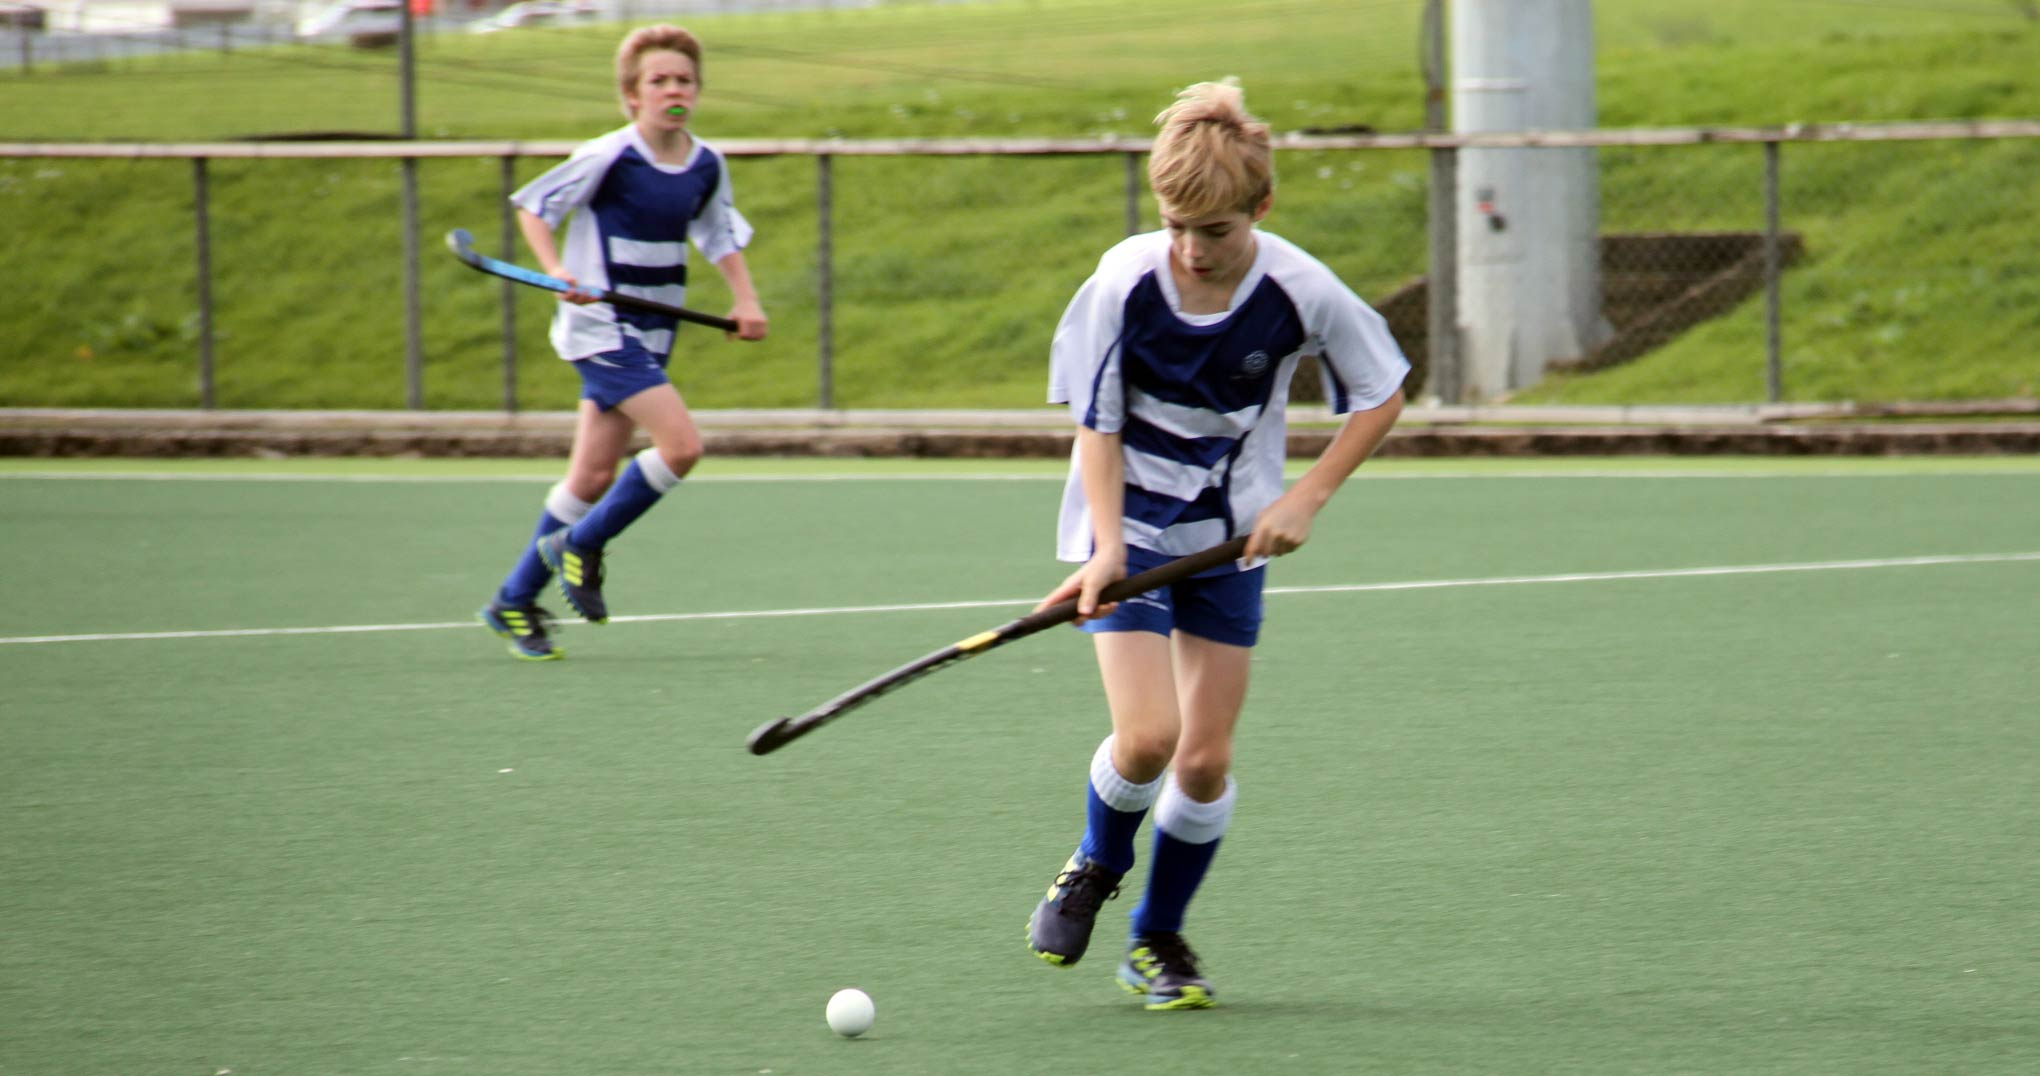 Saint-Kentigern-Boys'-School-Sports-Hockey.jpg